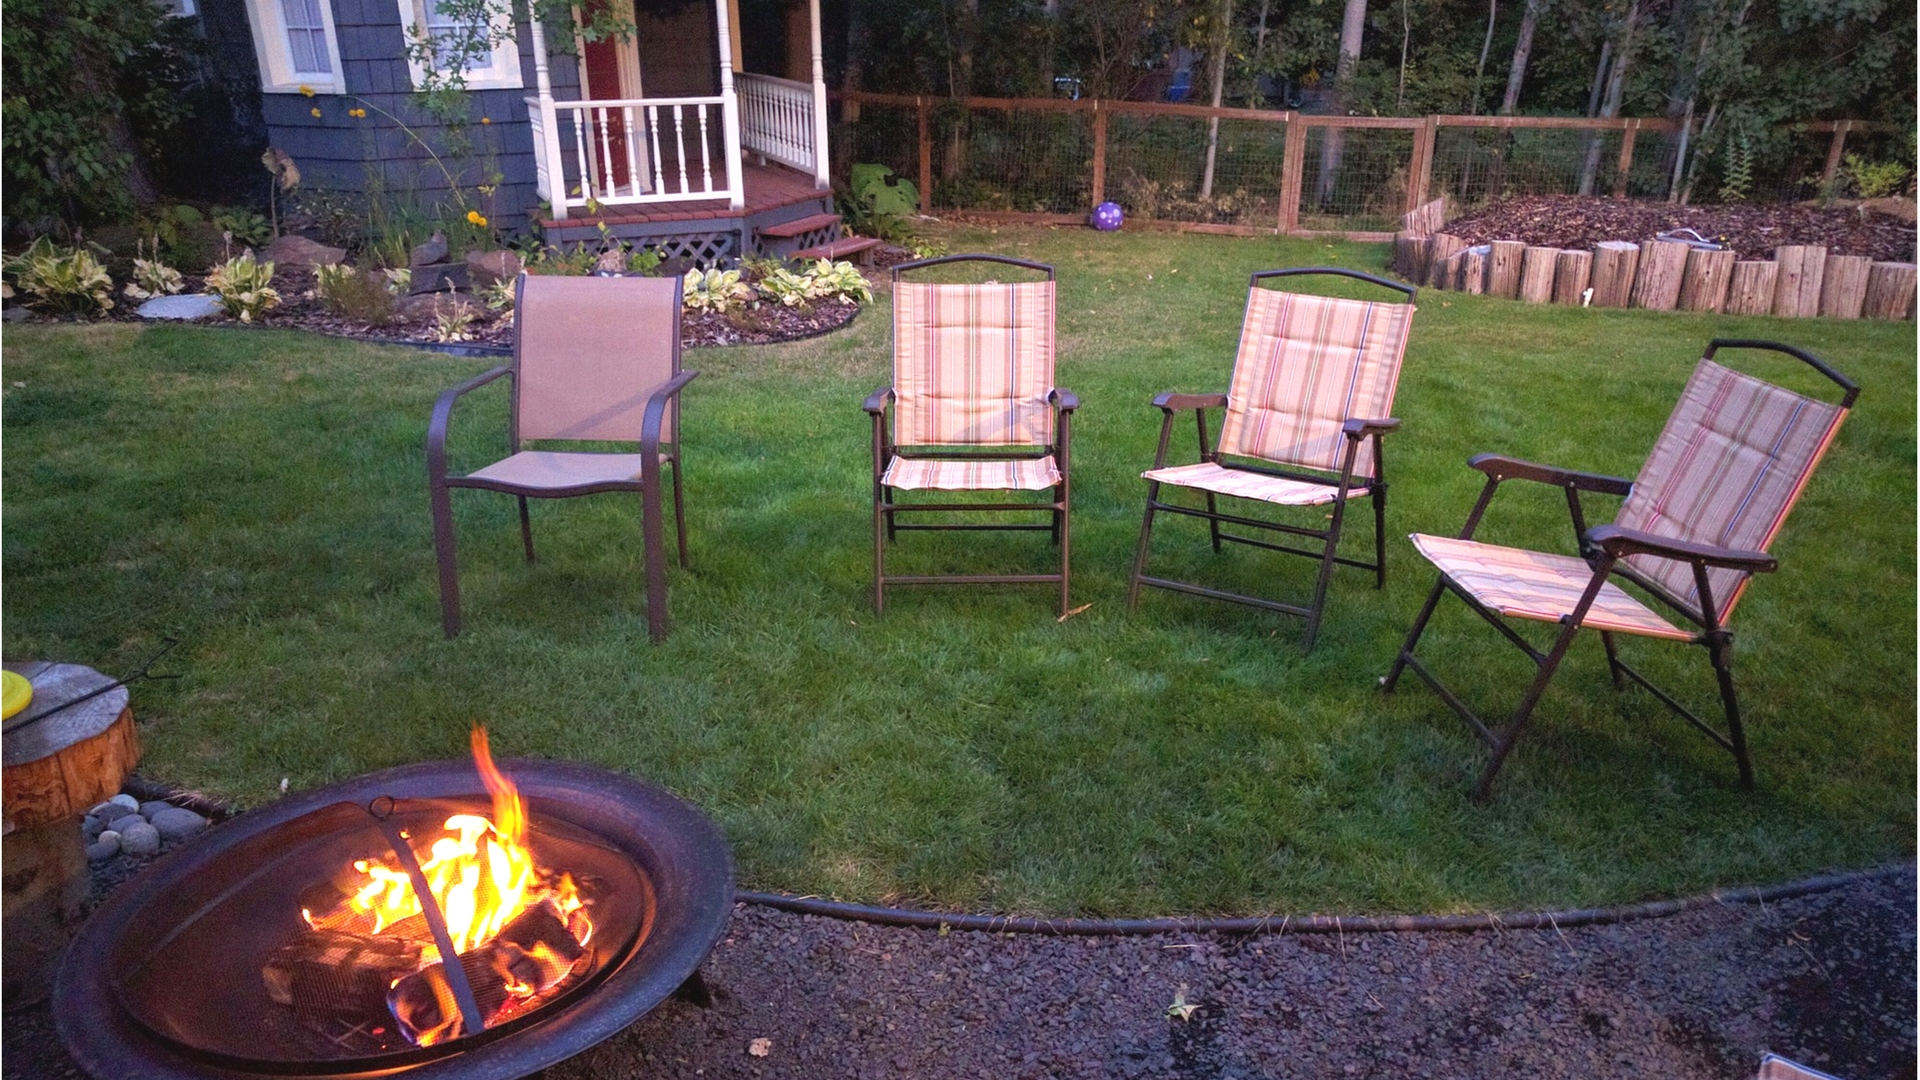 6 Upgrades for Turning Your Backyard into a Family Oasis